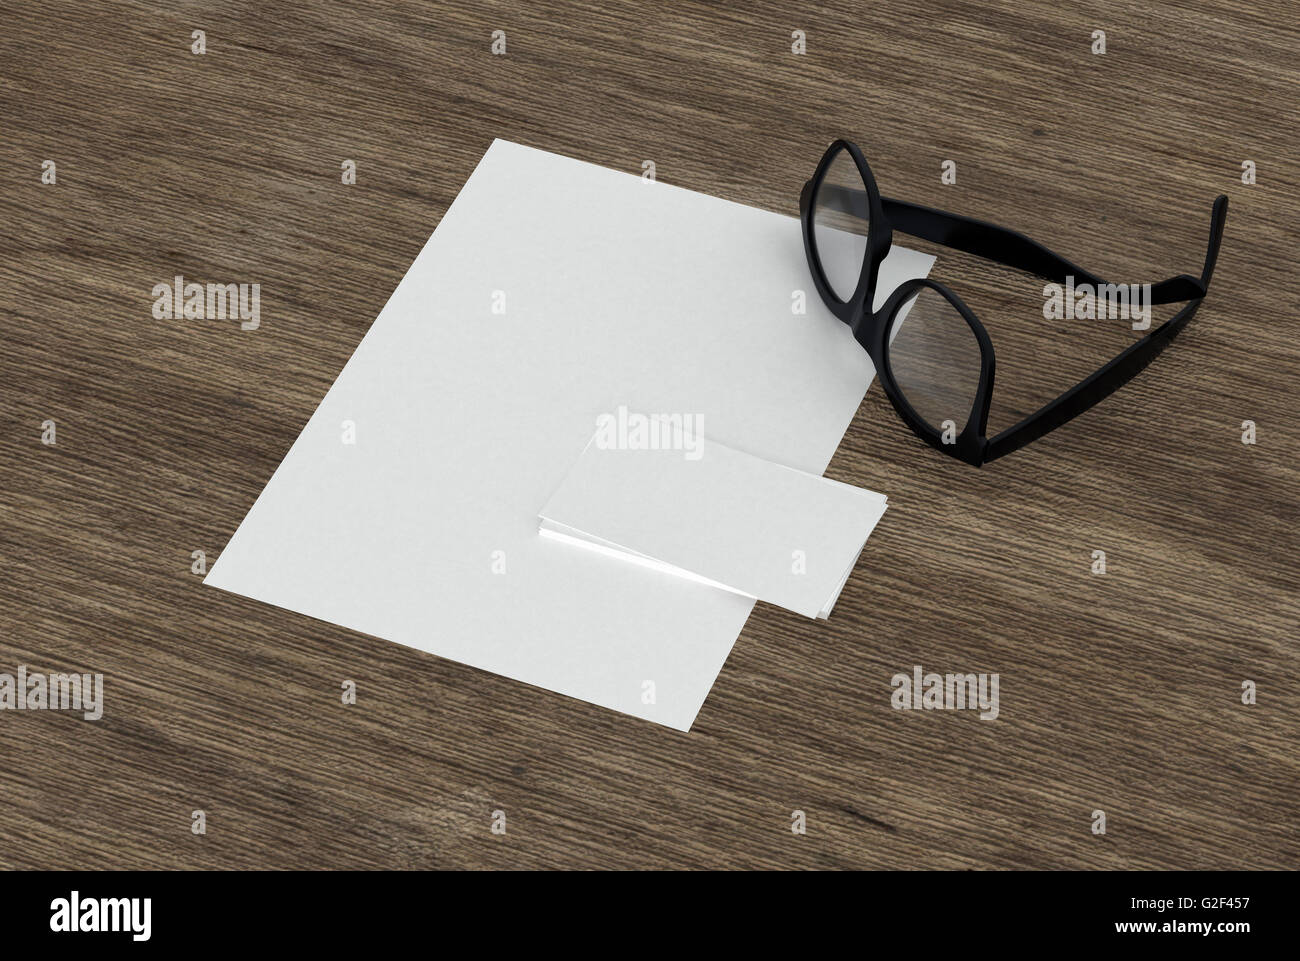 Blank business card, paper and eyeglasses lying together on a wooden ...